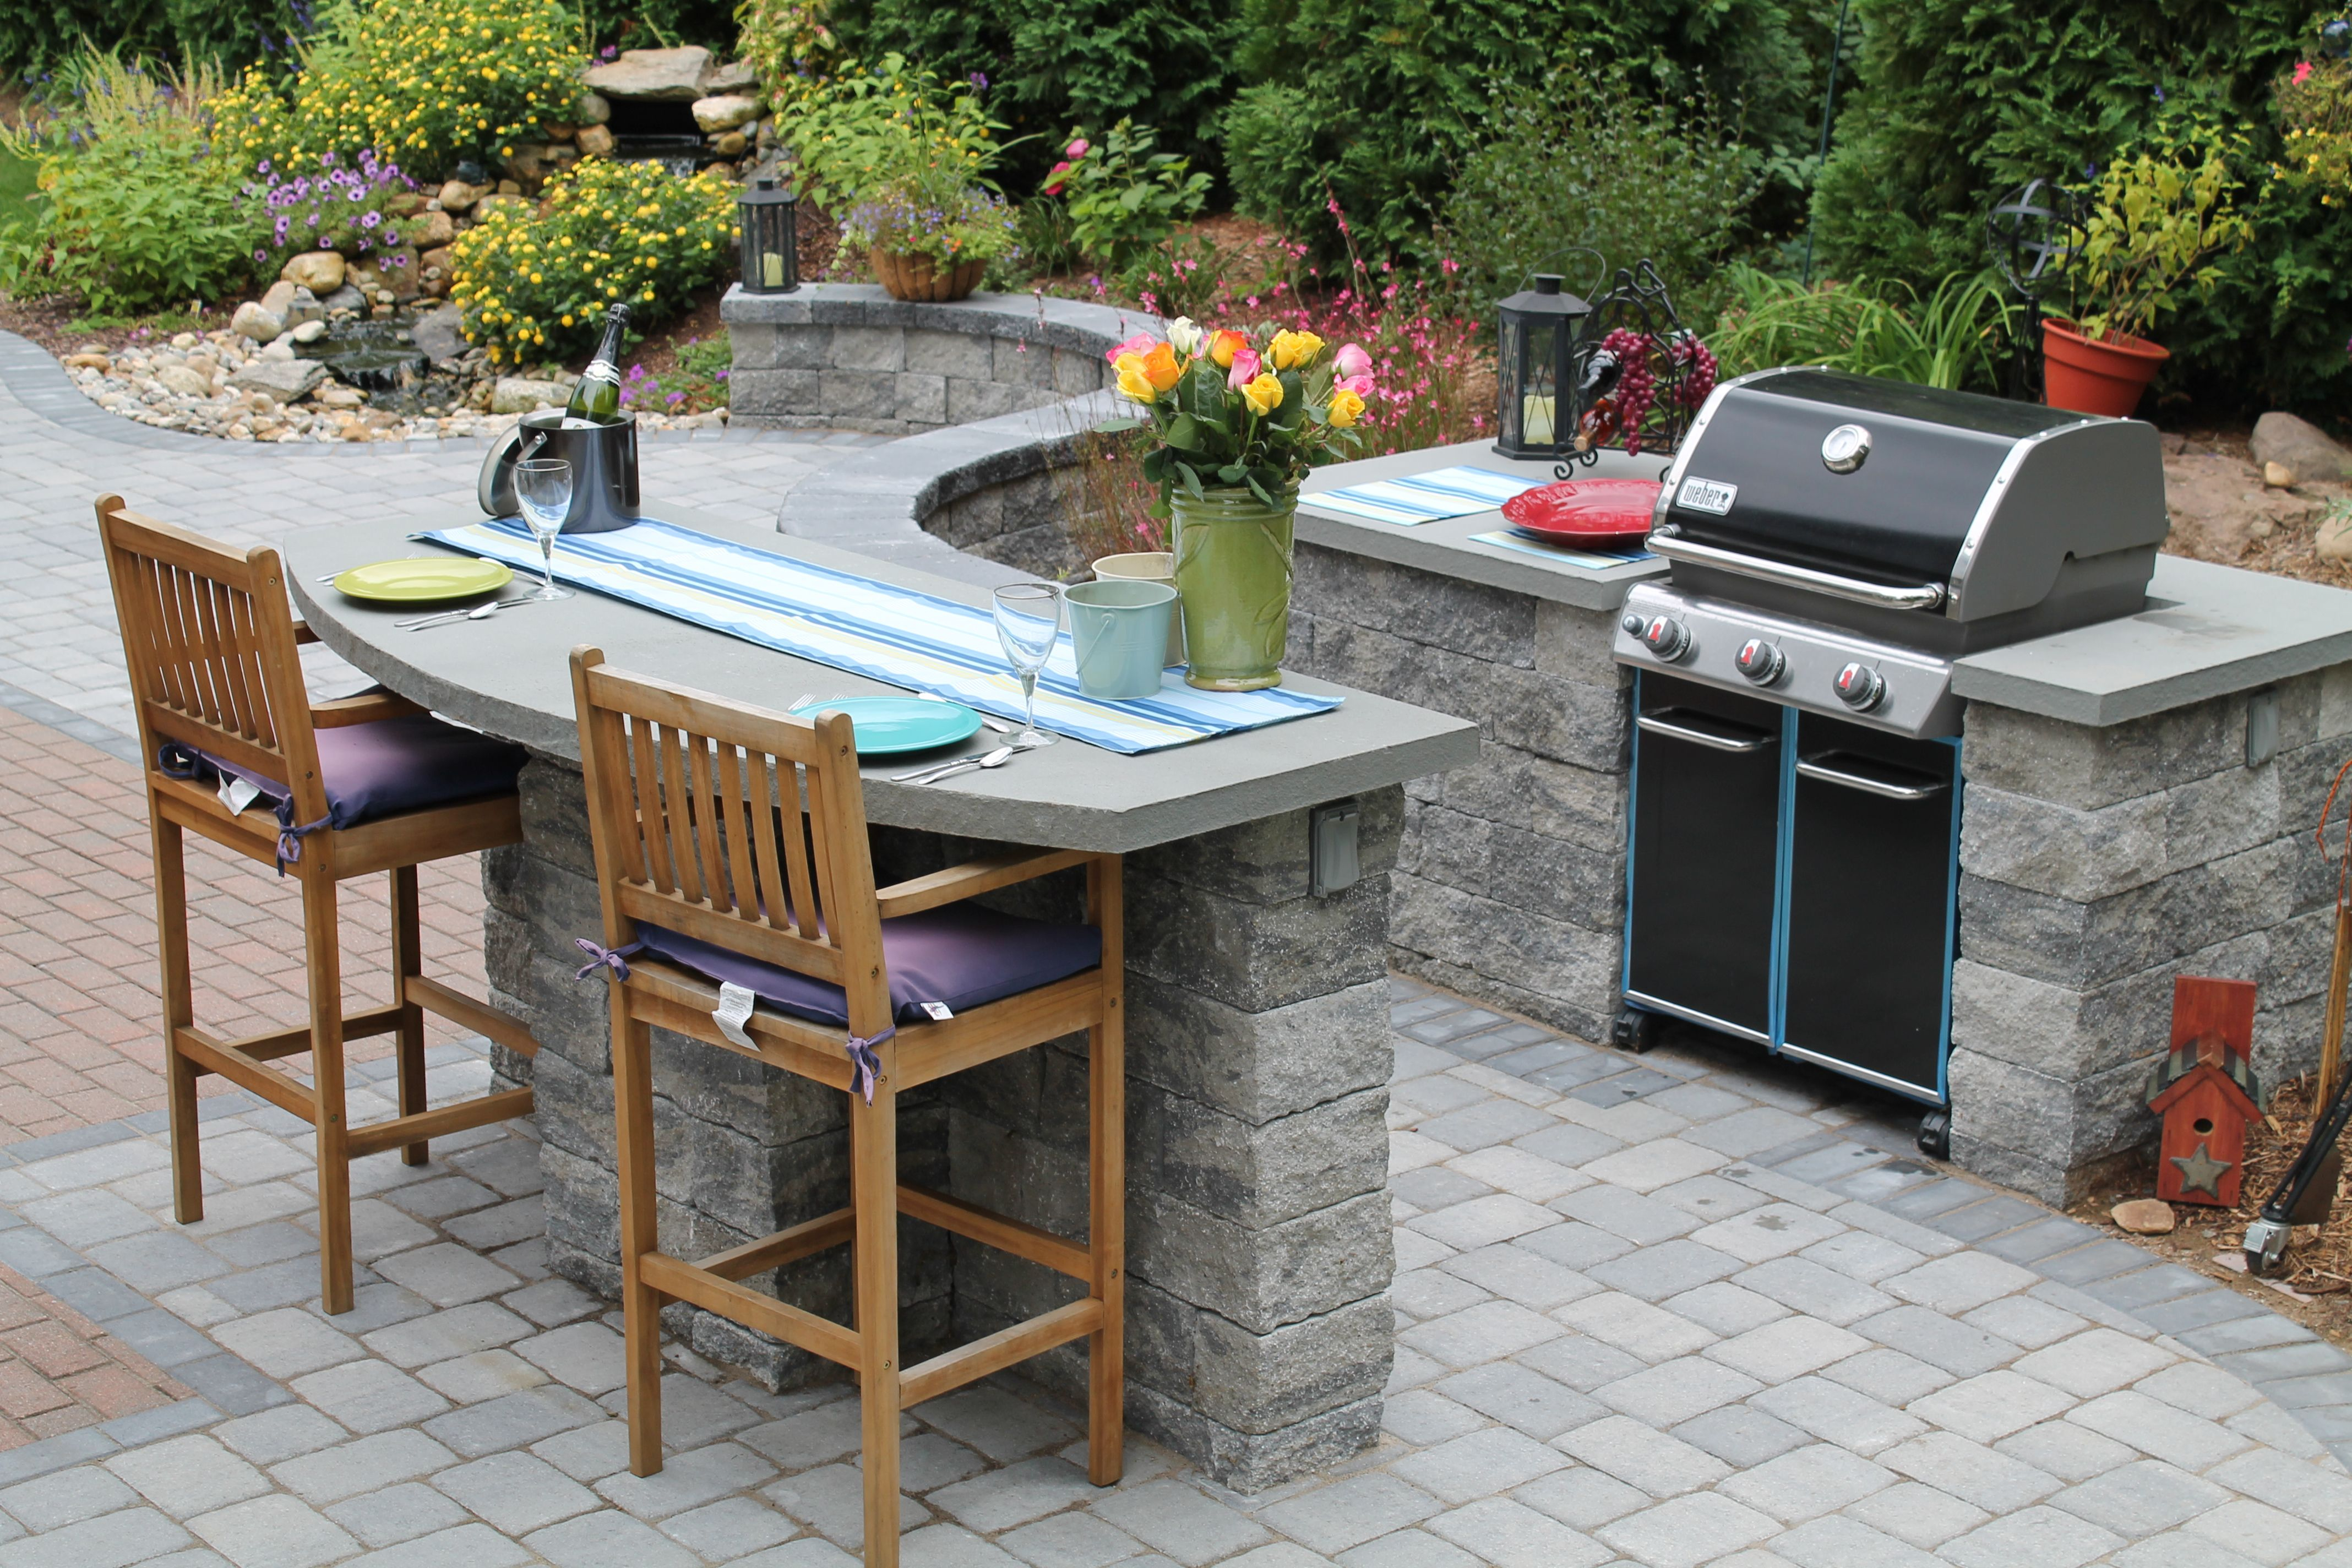 Catchy Outdoor Patio Grill Ideas And Outdoor Built In Grill with regard to 14 Some of the Coolest Initiatives of How to Craft Backyard Built In Bbq Ideas